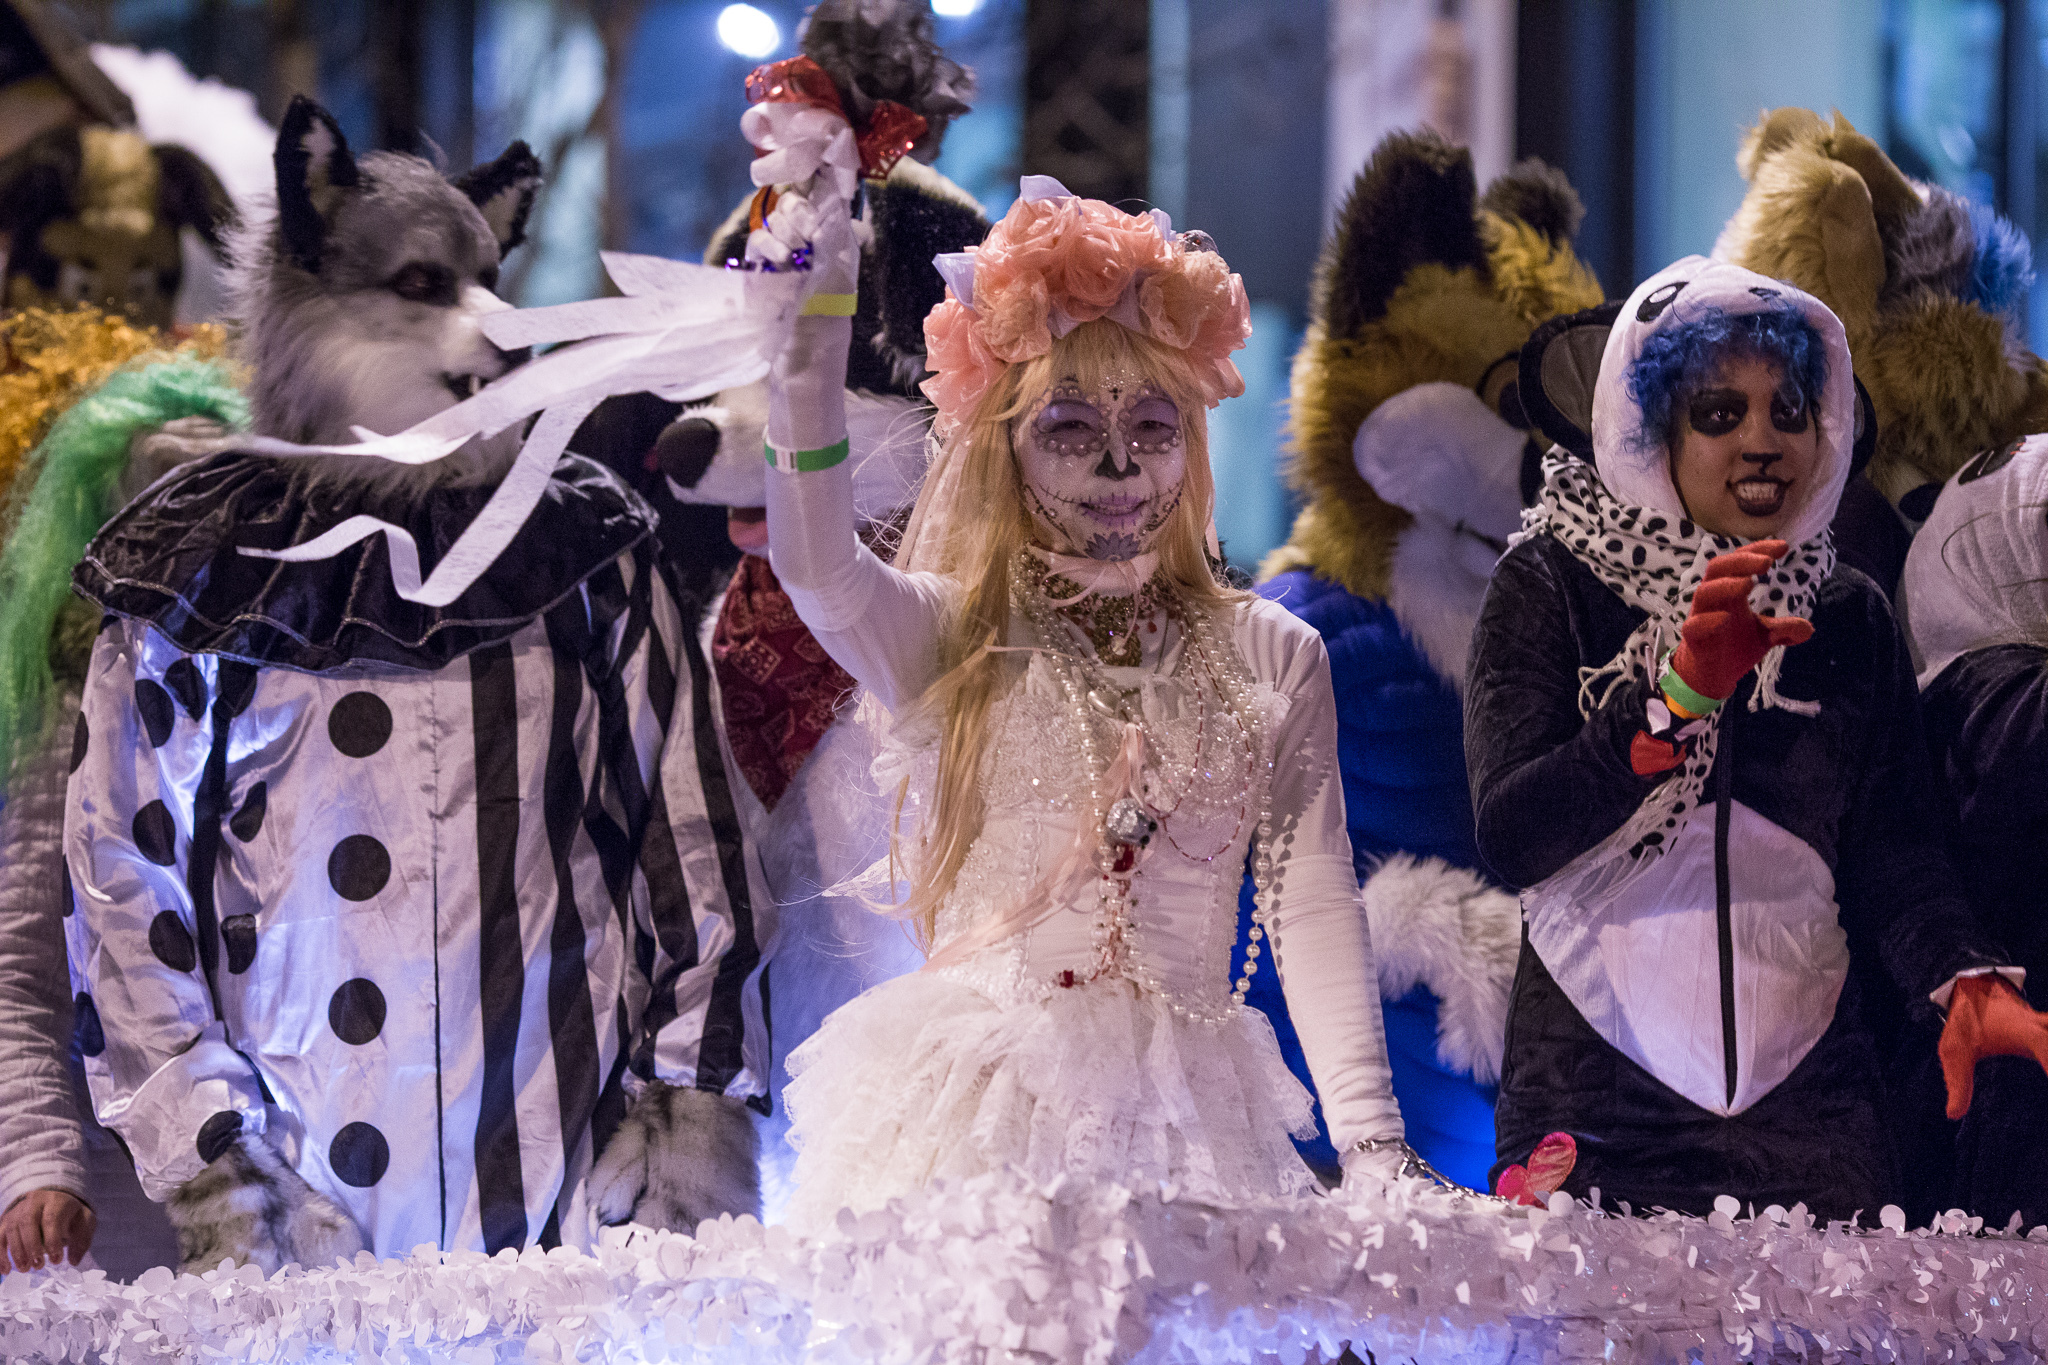 Photos from the Northalsted Halloween Parade 2014